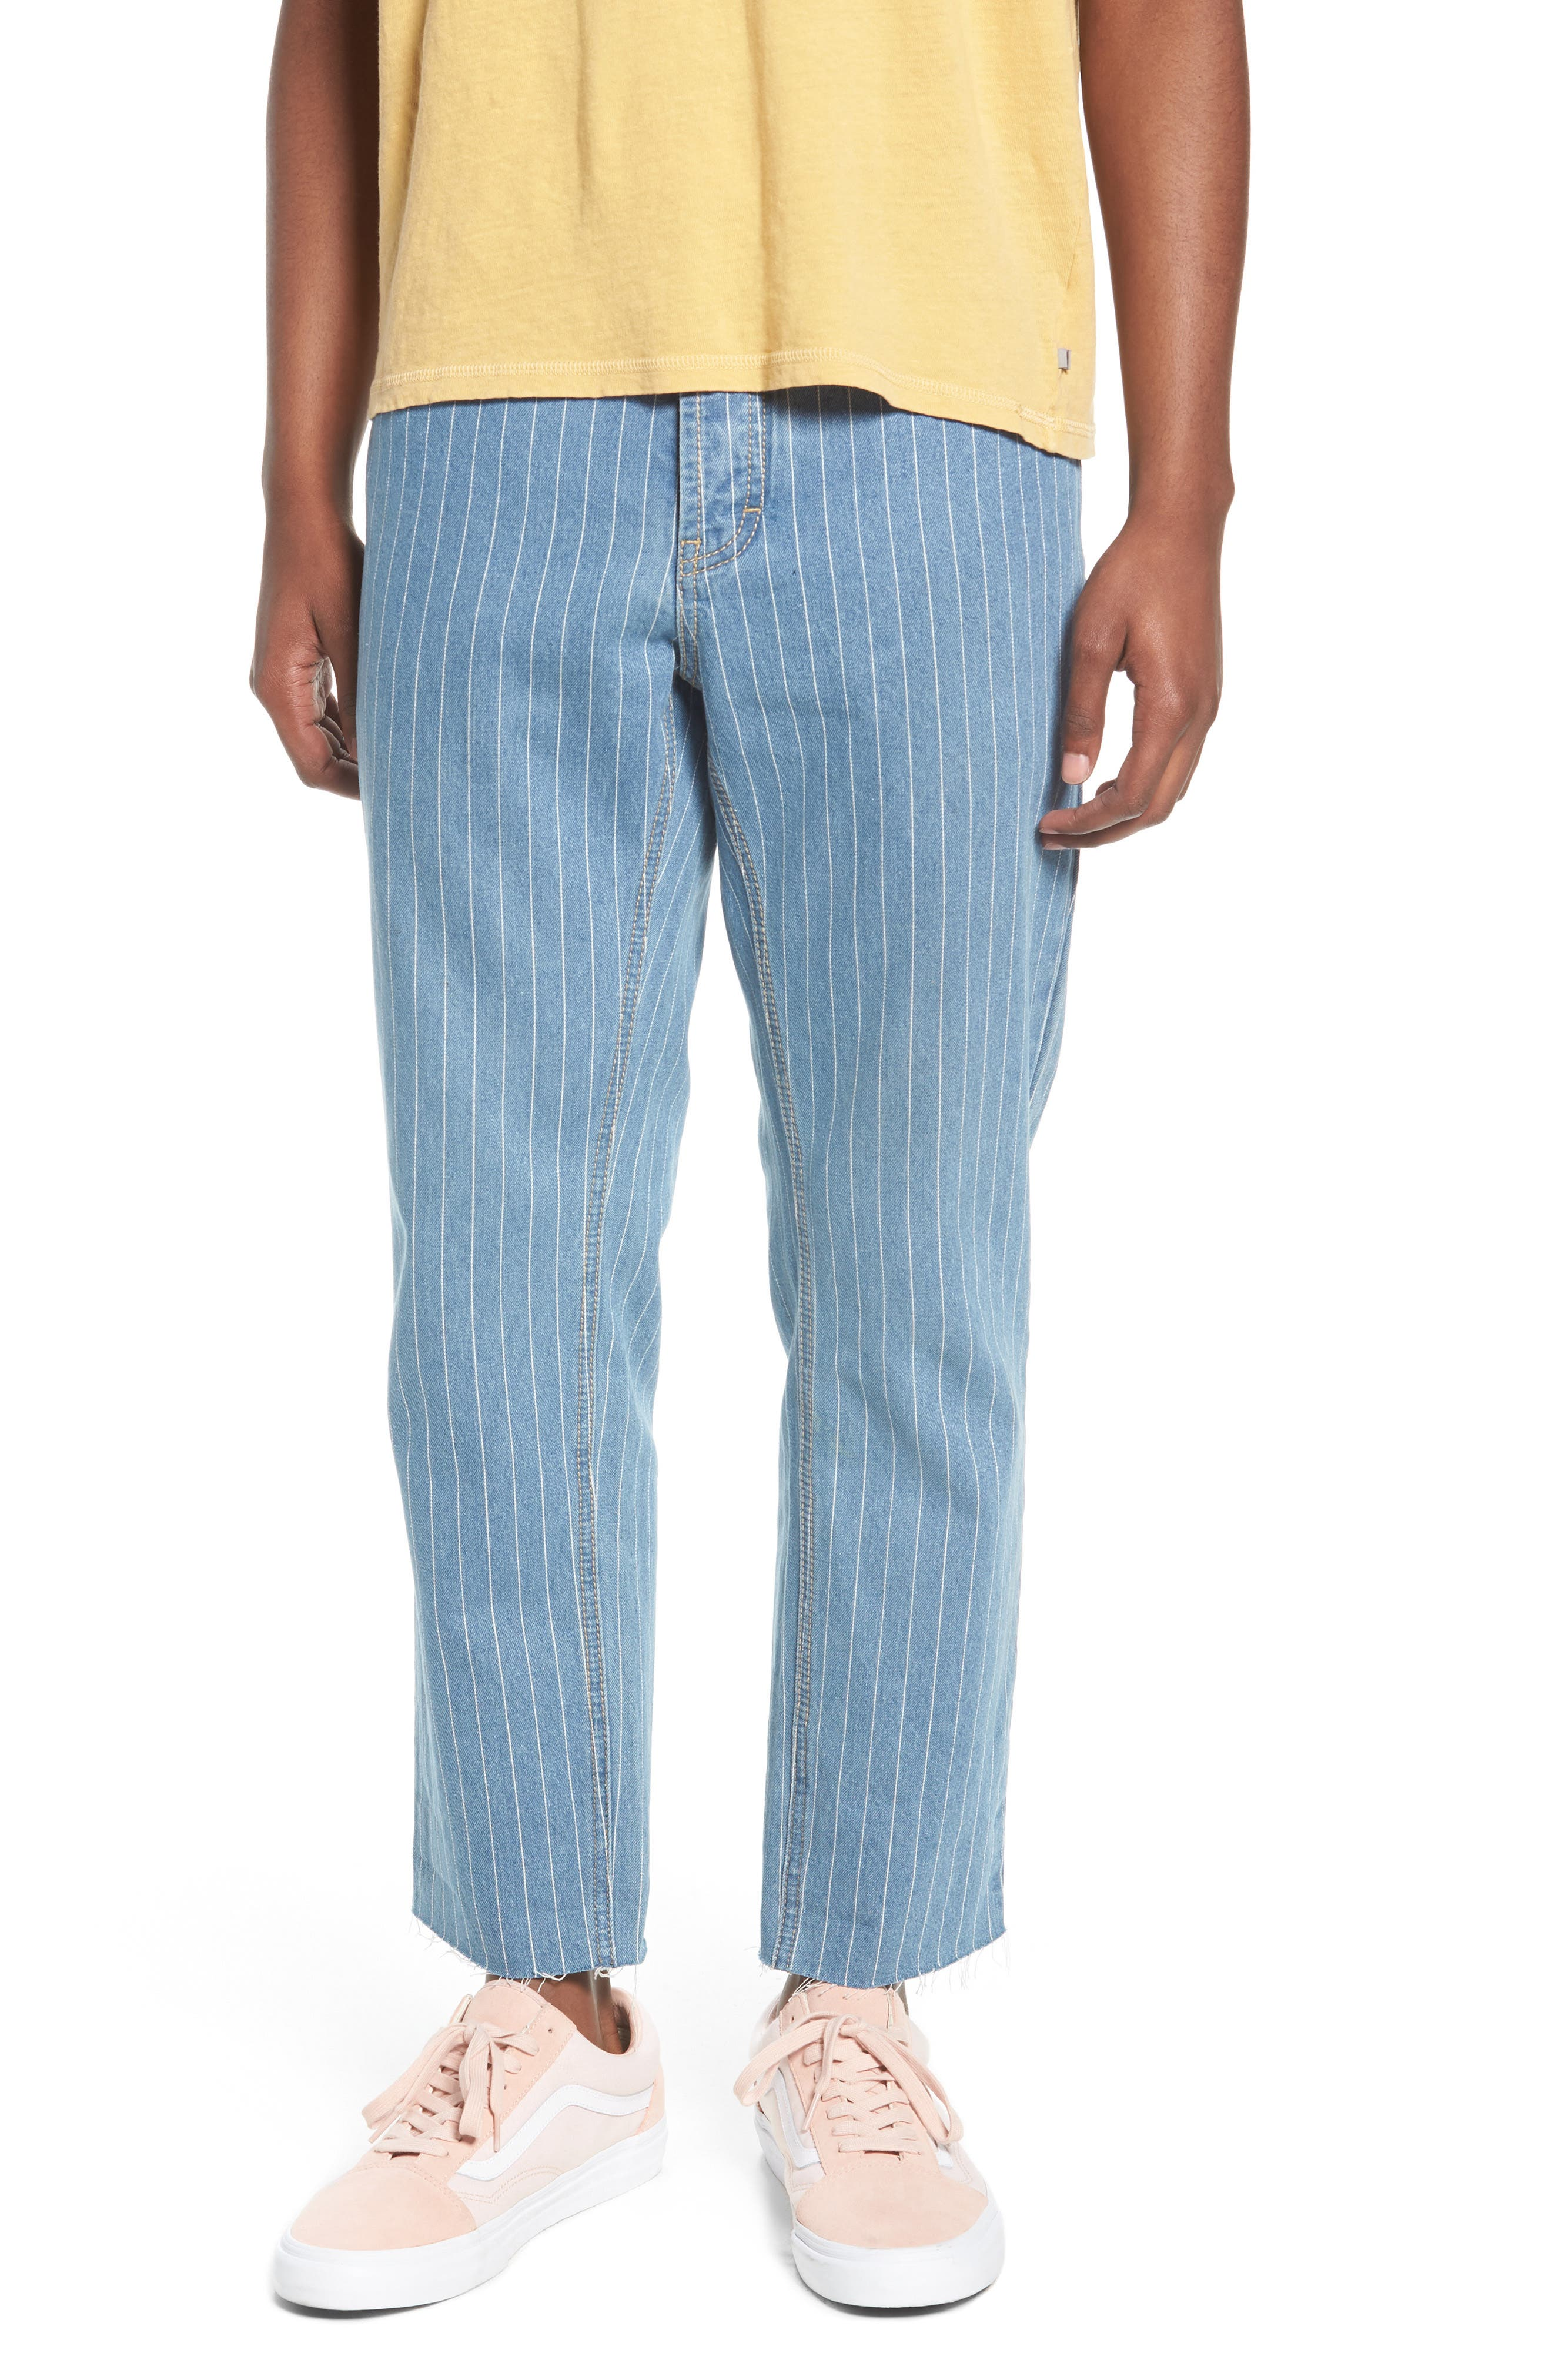 BARNEY COOLS B. RELAXED JEANS